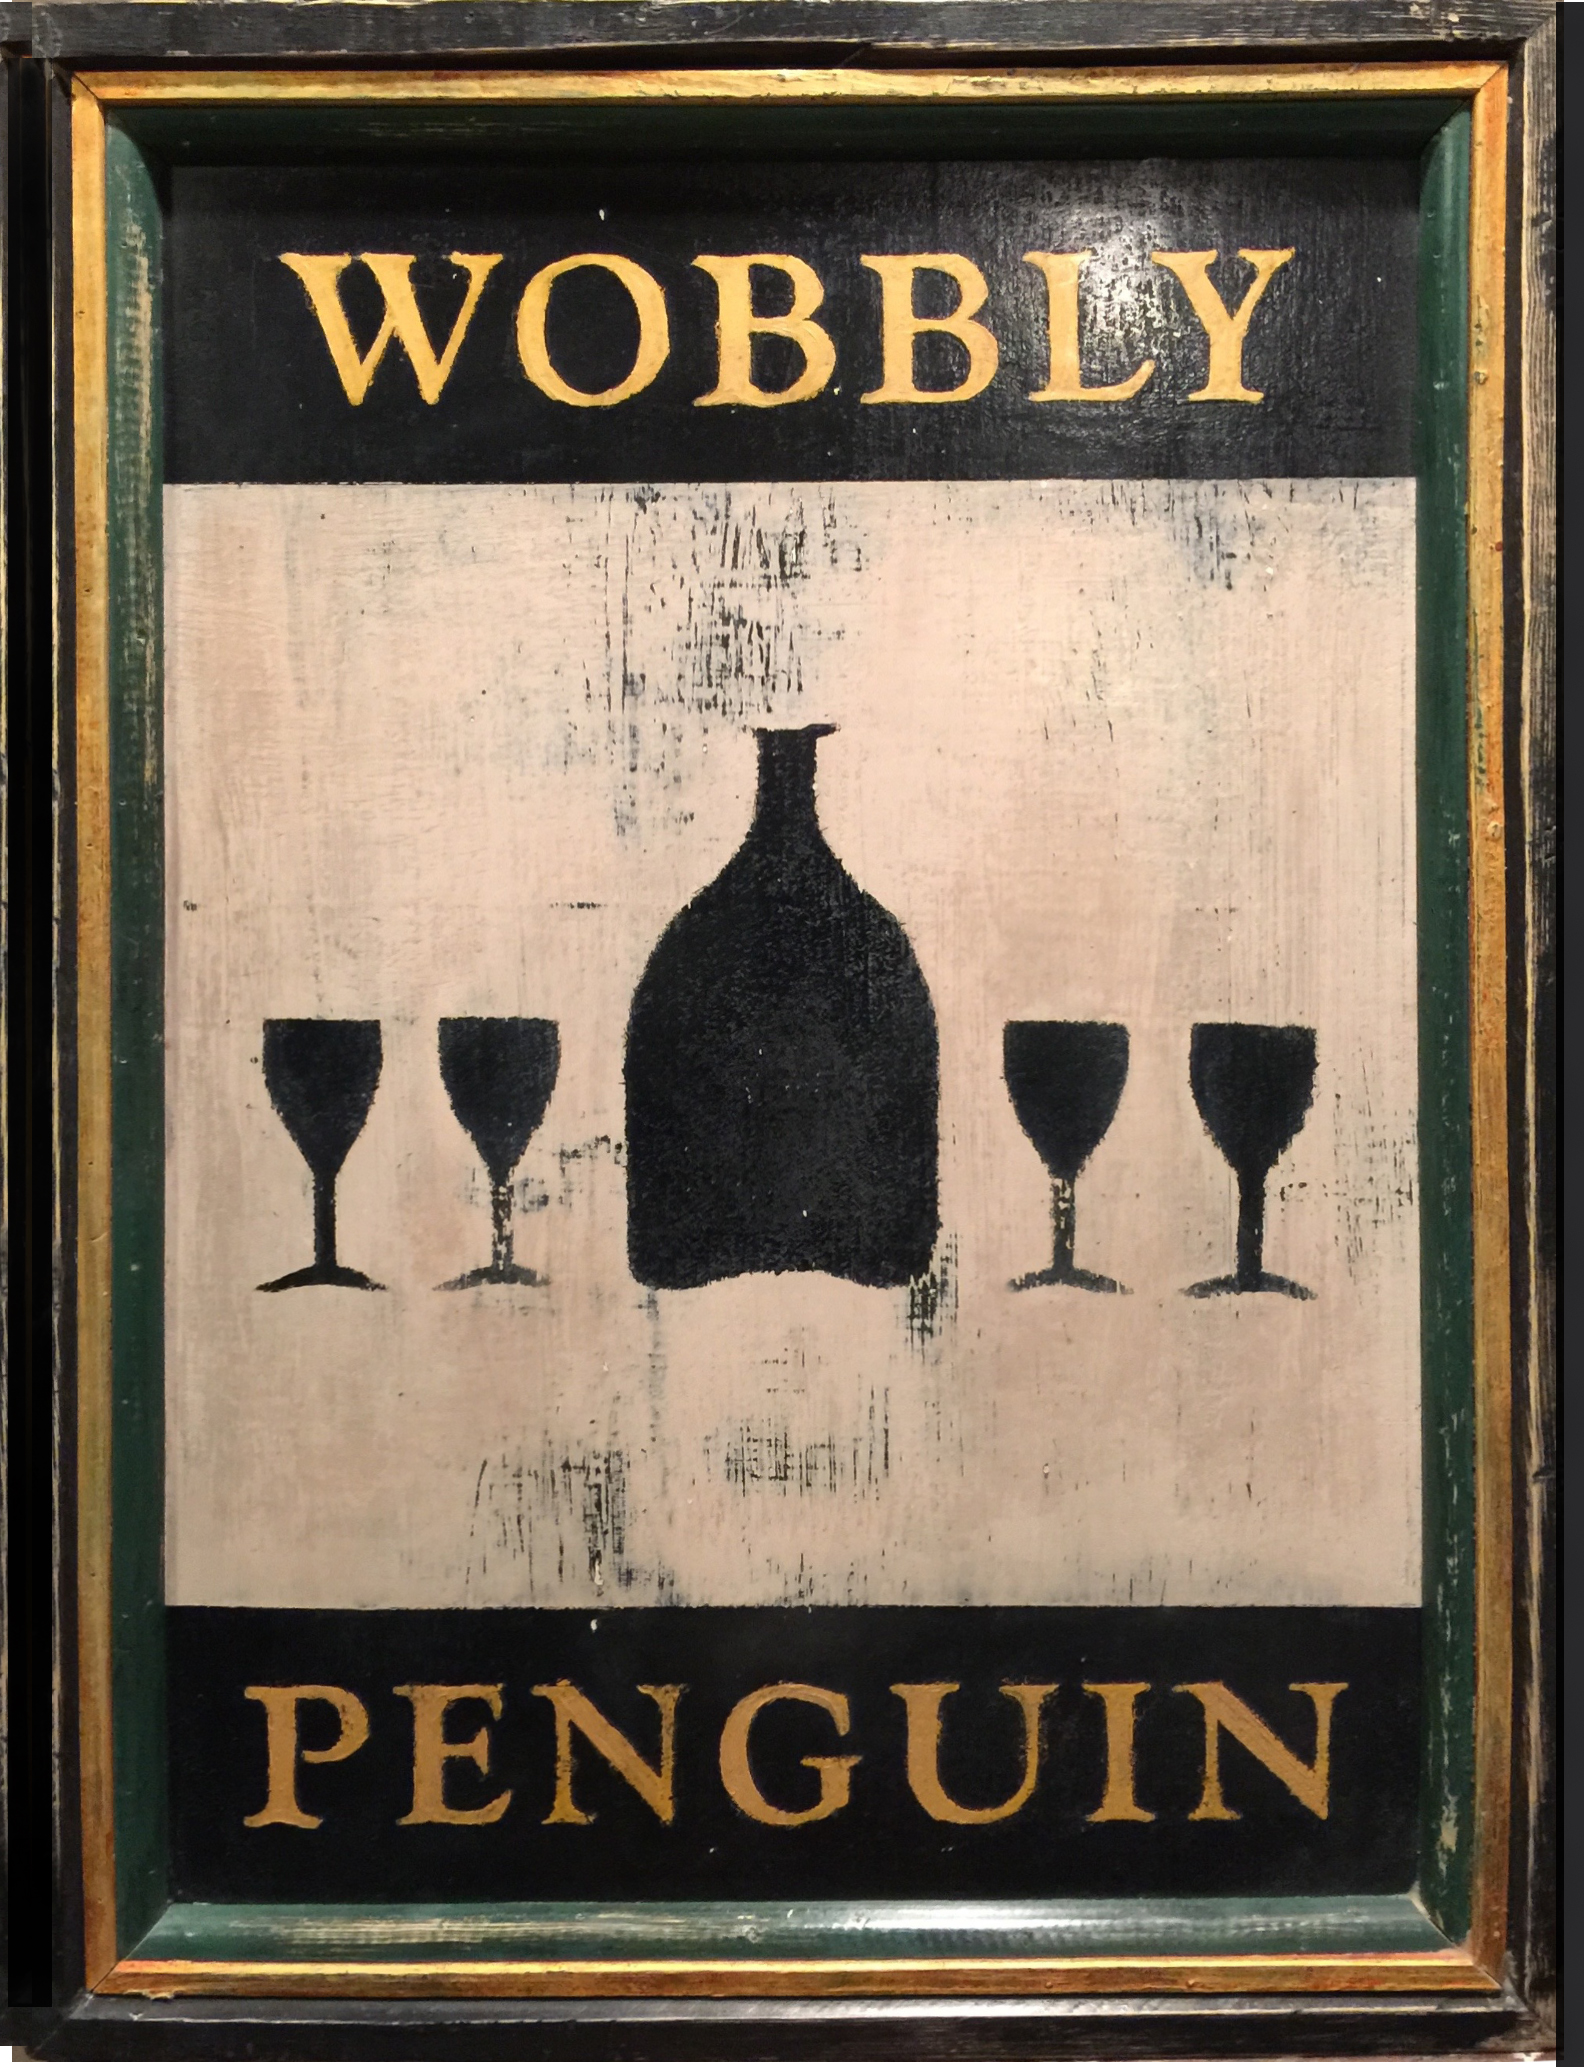 The Wobbly Penguin (reverse side)